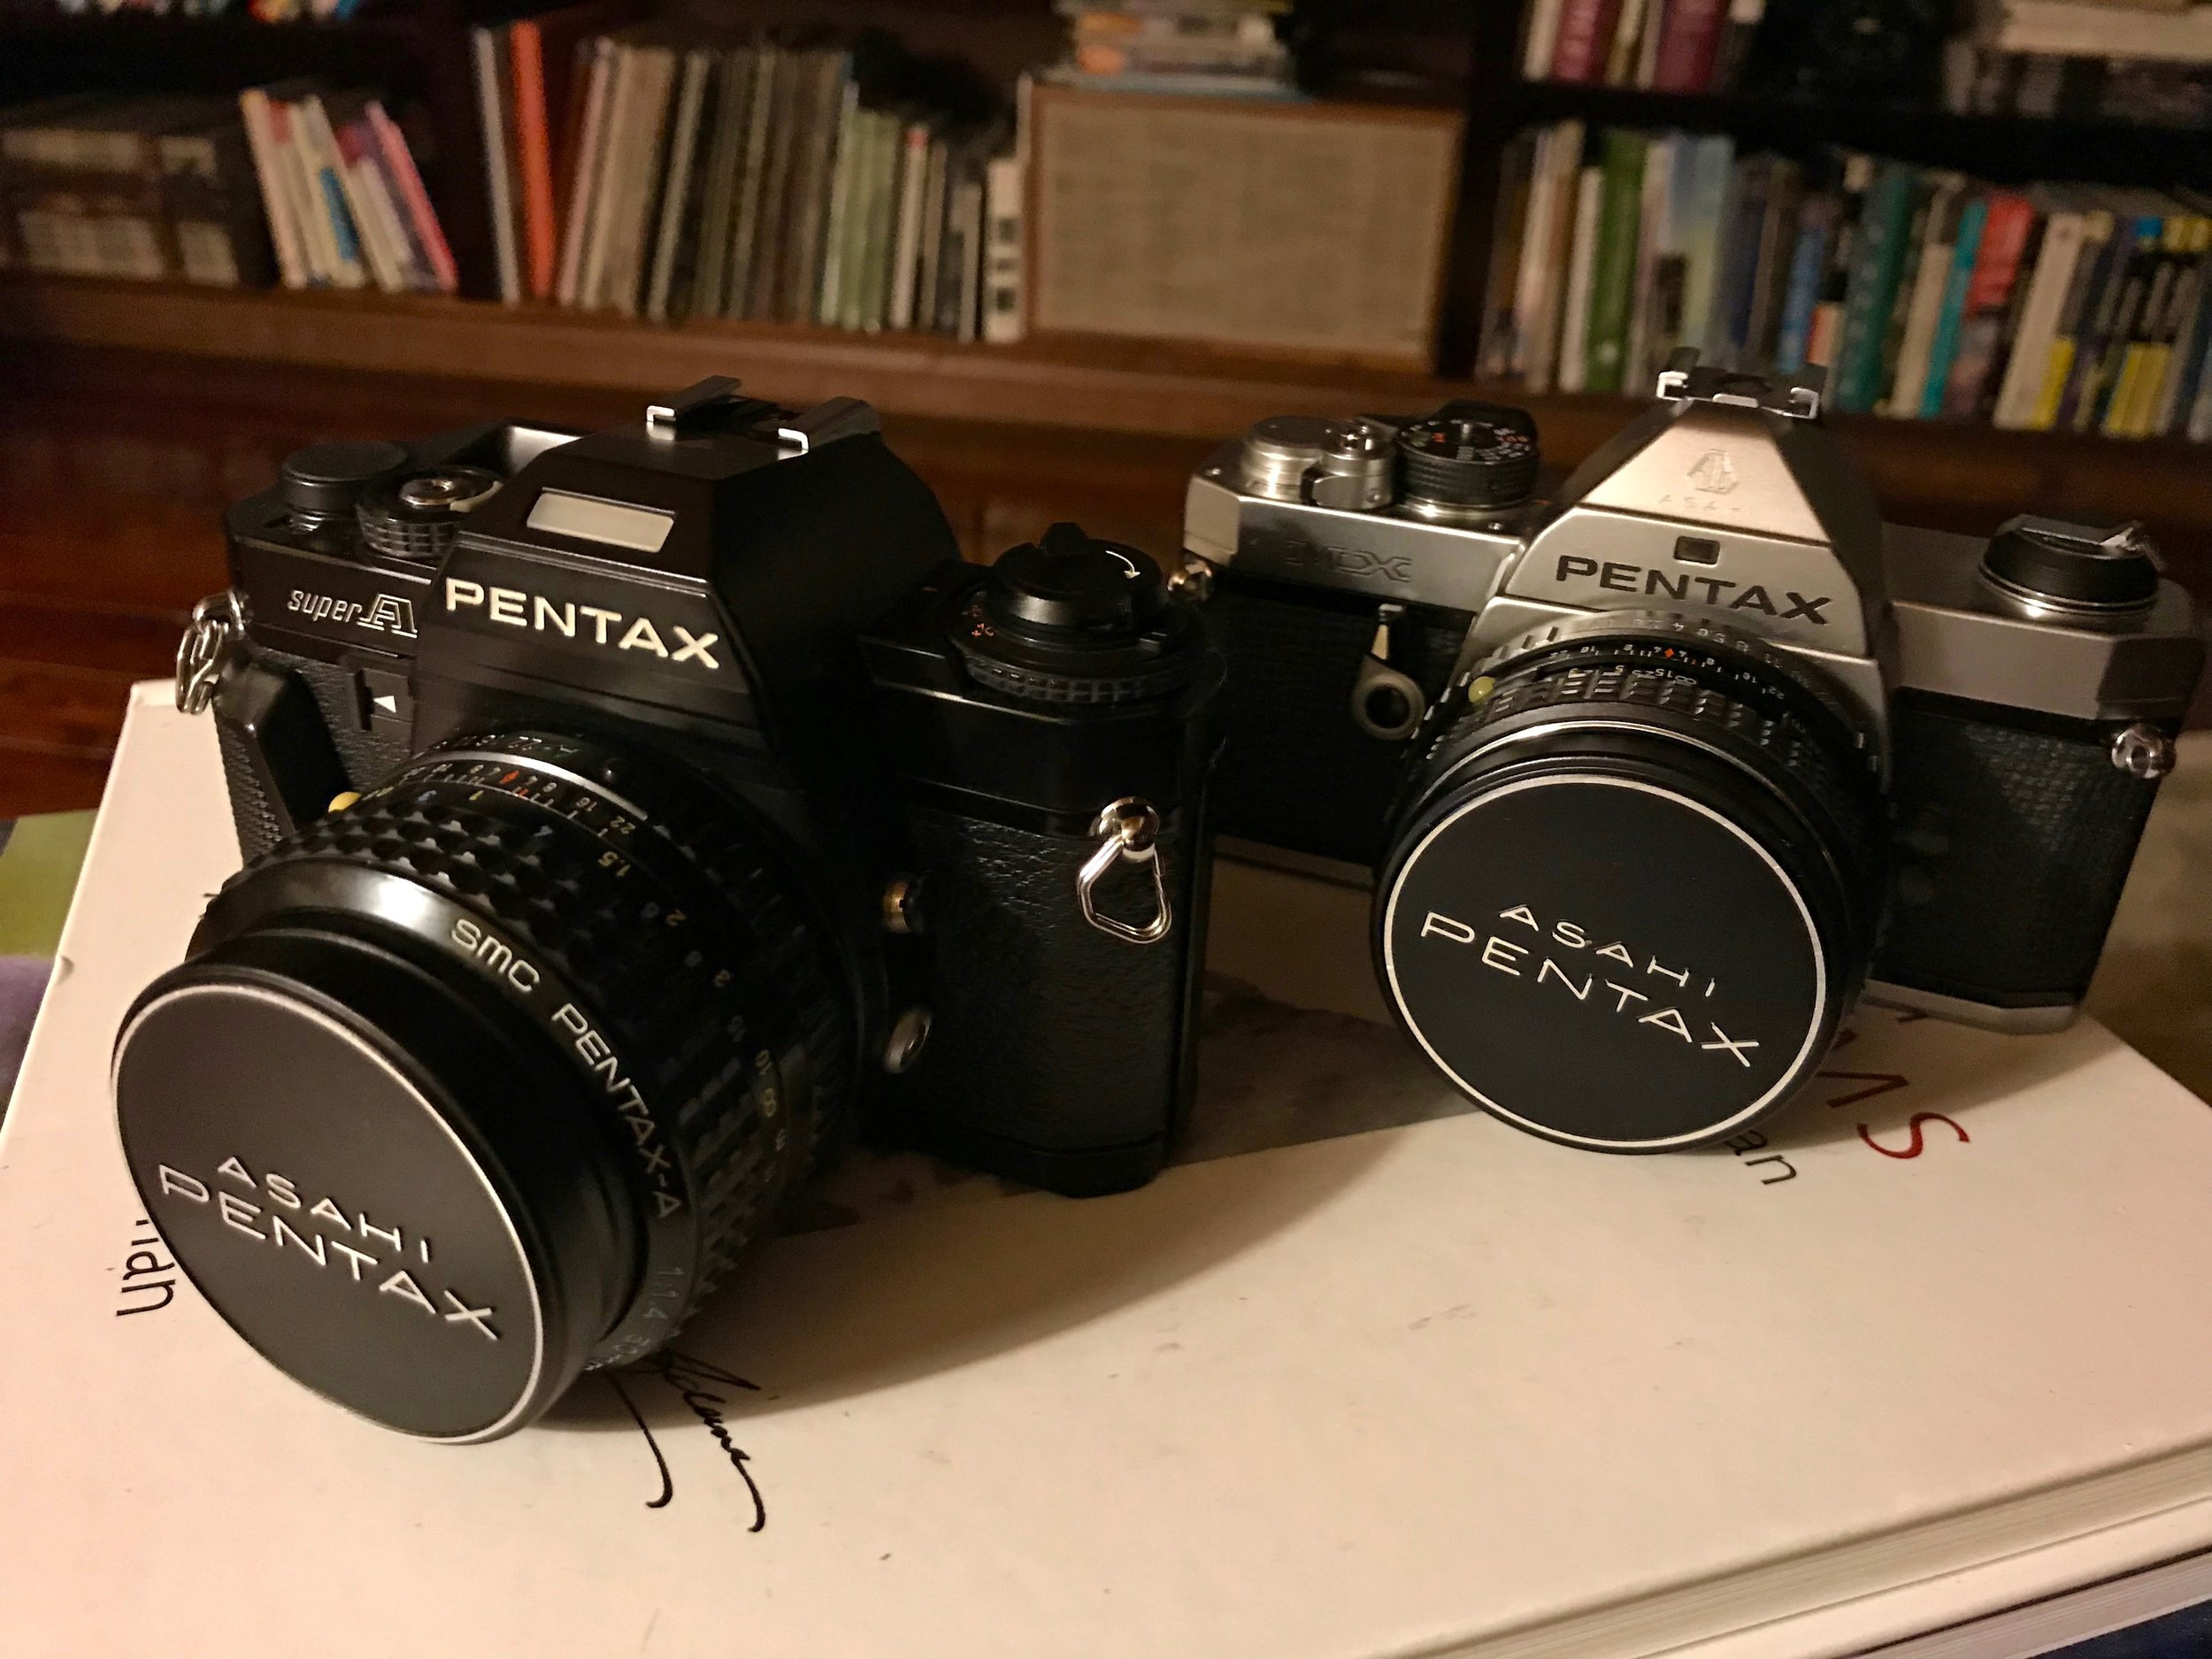 Pentax Super A (left) with SMC Pentax-A 50mm f/1.4 and Pentax MX (right) with SMC Pentax-M 50mm f/1.7